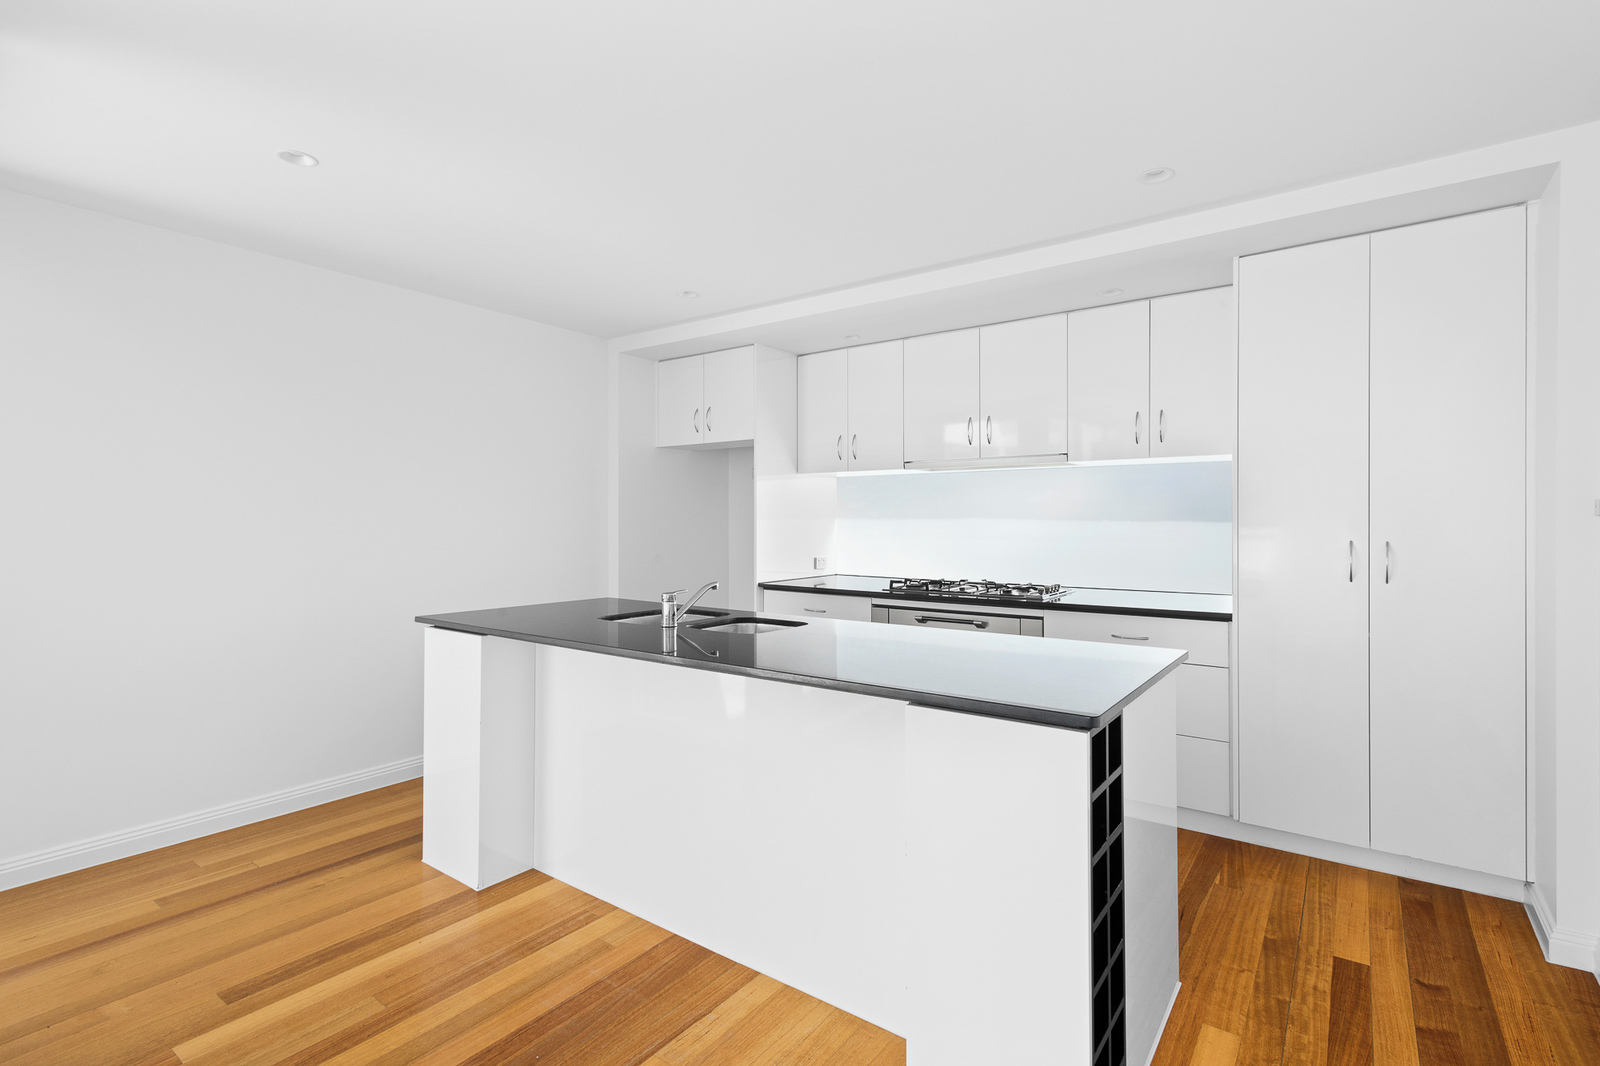 246 Moray Street, South Melbourne 3205 - Image 2